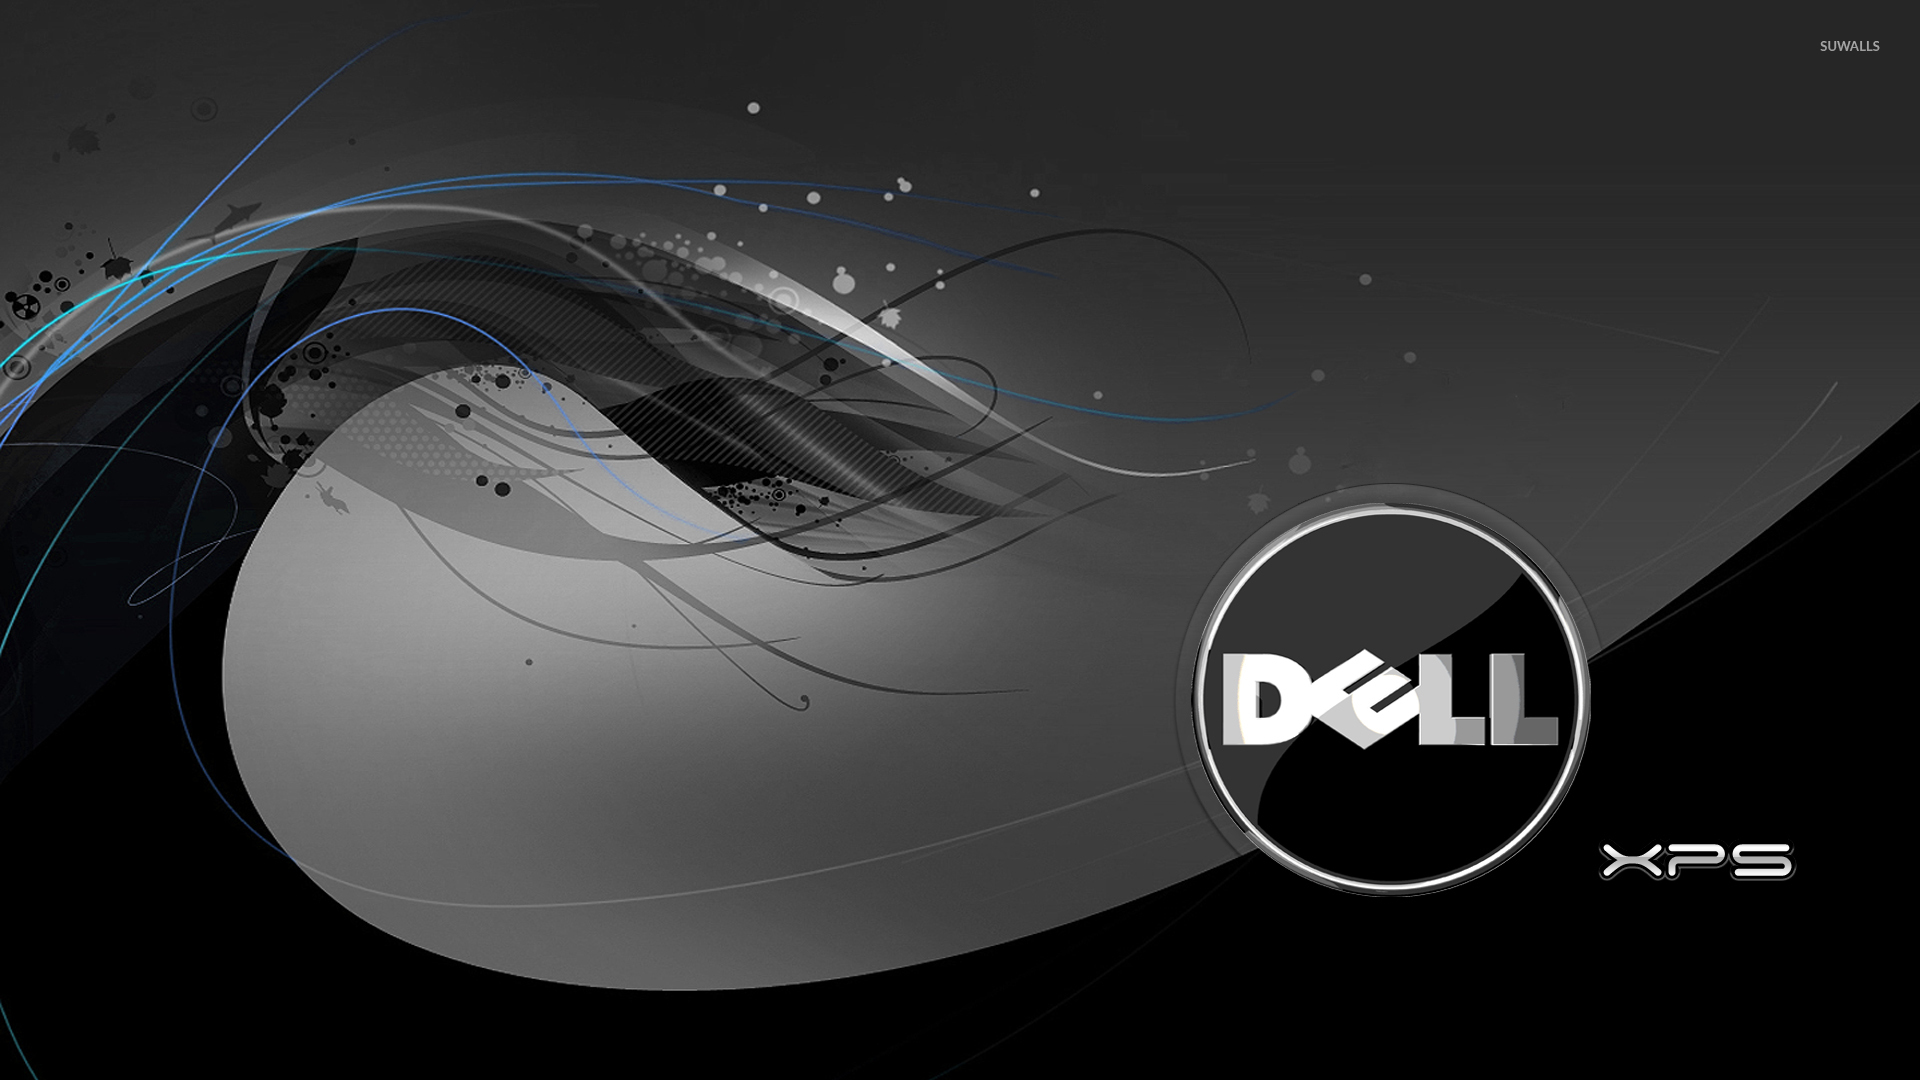 Dell XPS wallpaper   Computer wallpapers   6216 1920x1080